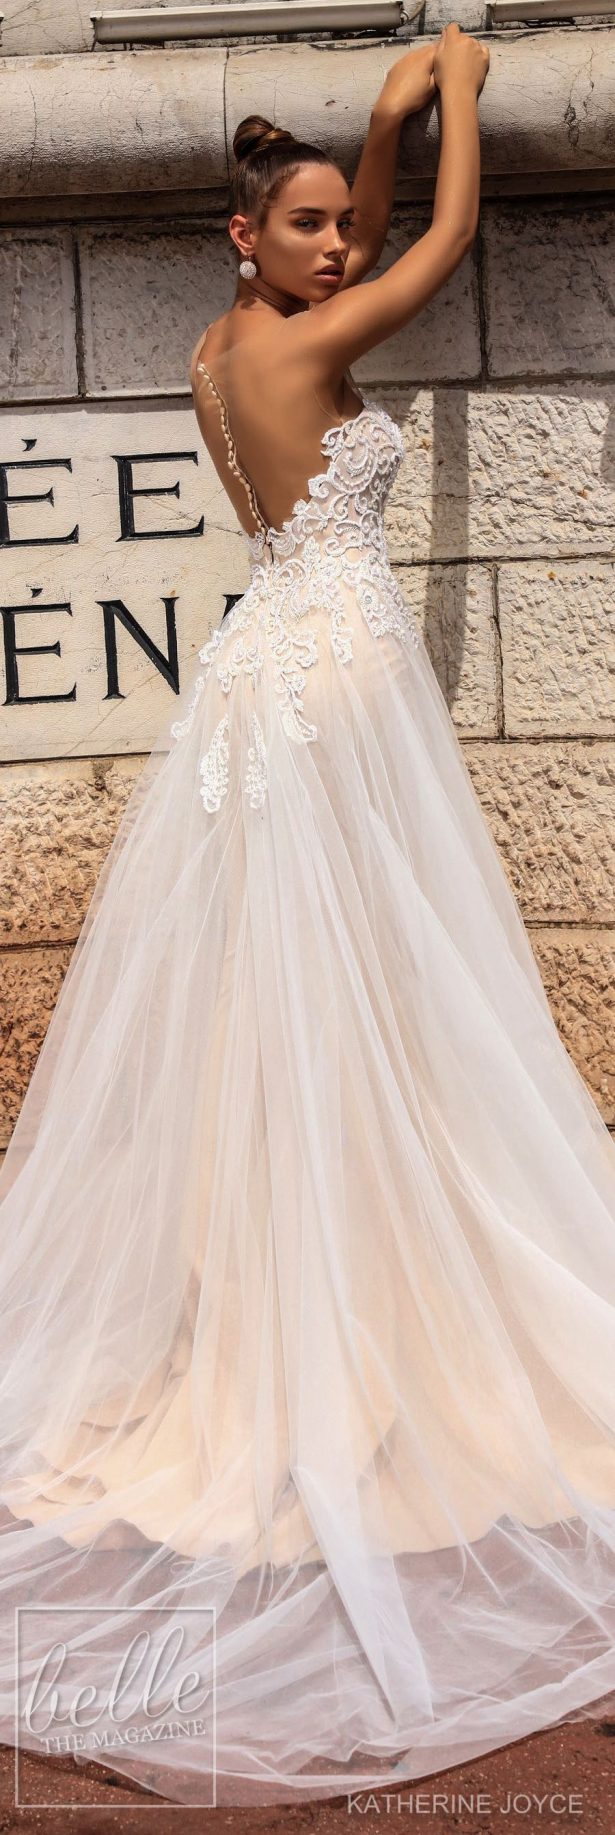 Wedding Dress by Katherine Joyce - Ma Cheri Bridal Collection